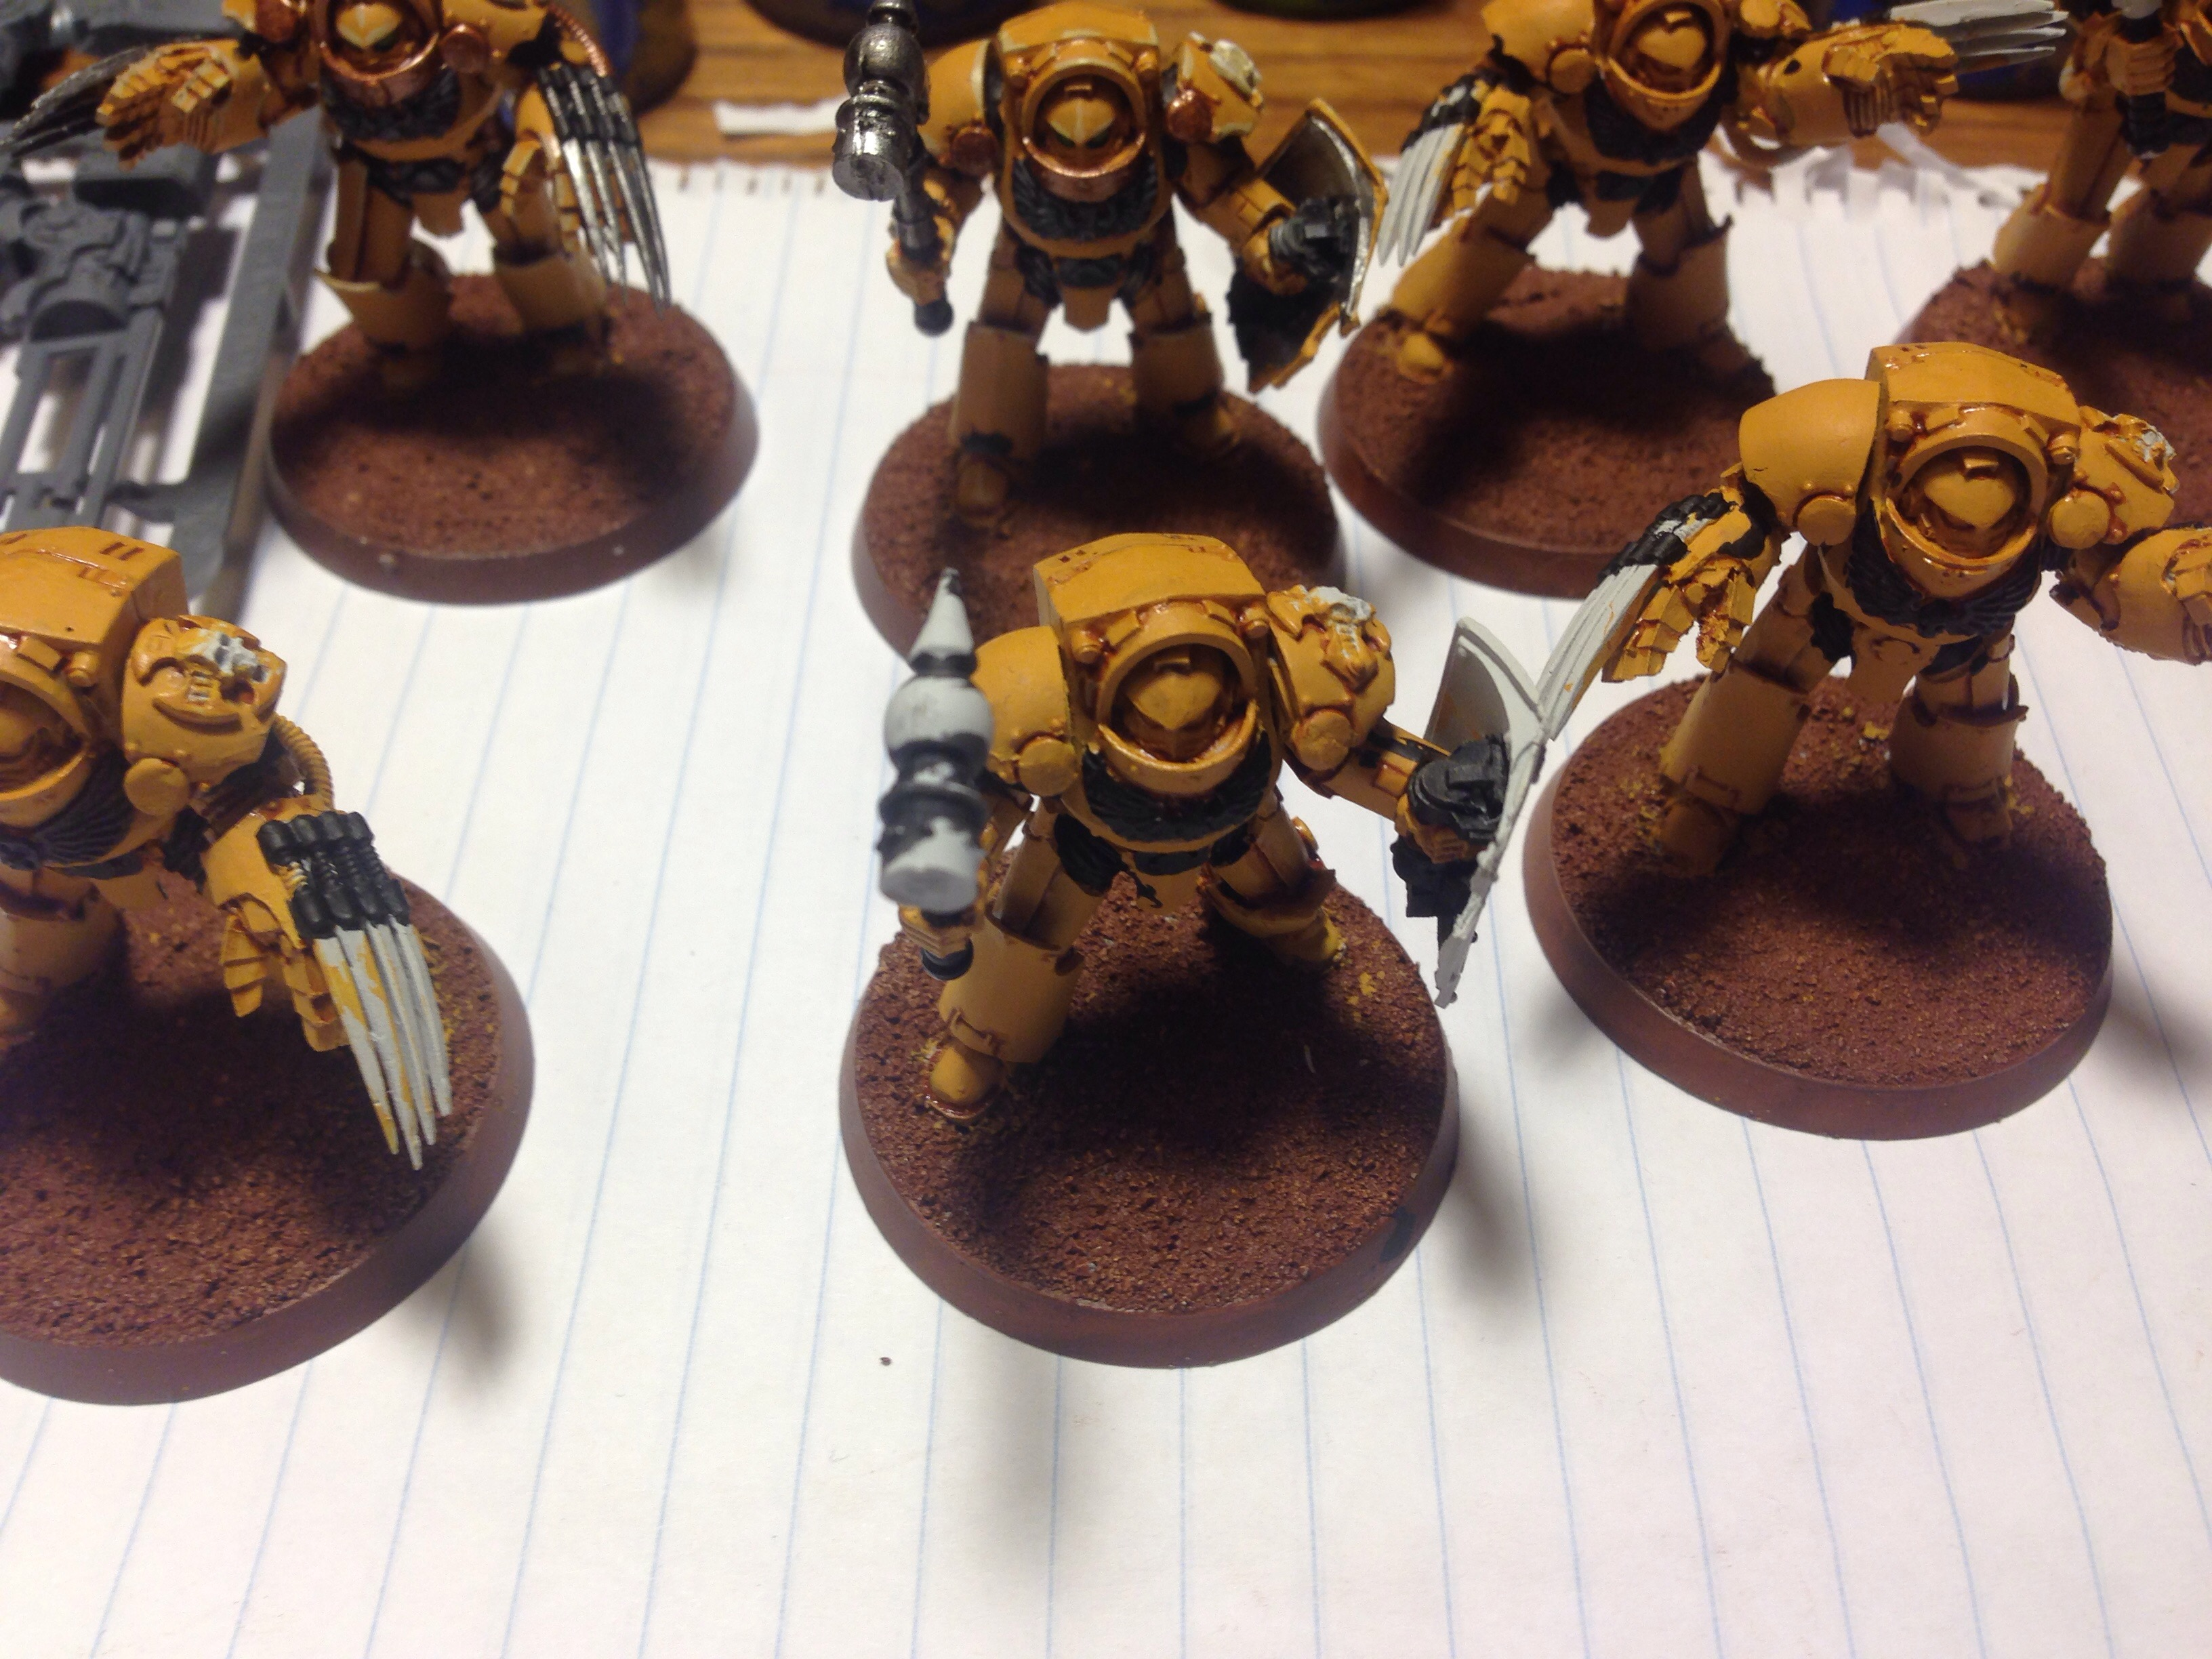 imperial fist terminators work in progress